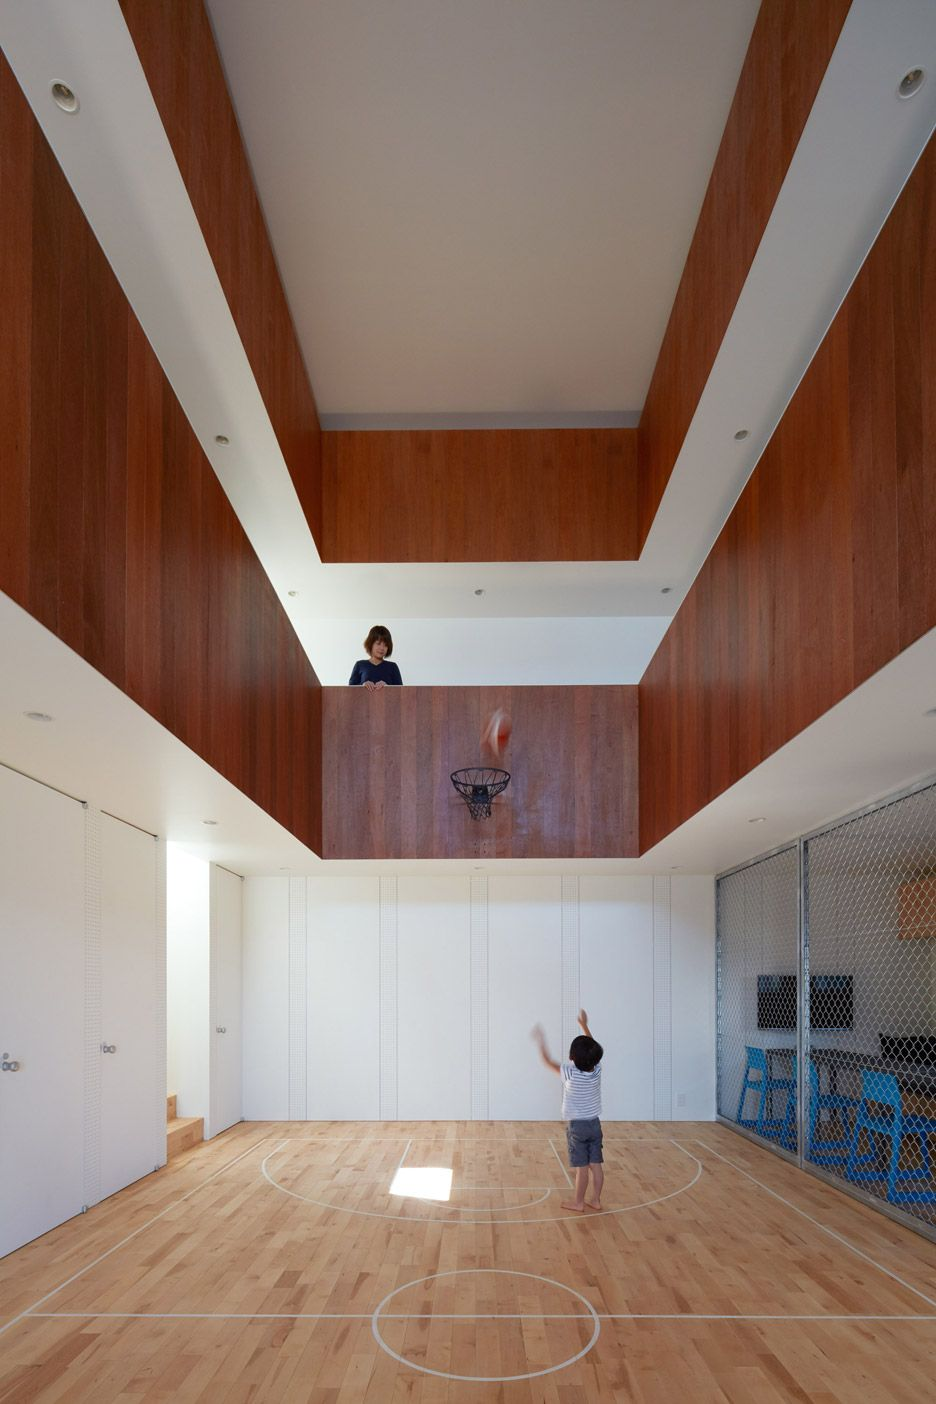 Koizumi sekkei designs house in japan with basketball for Basketball court inside house